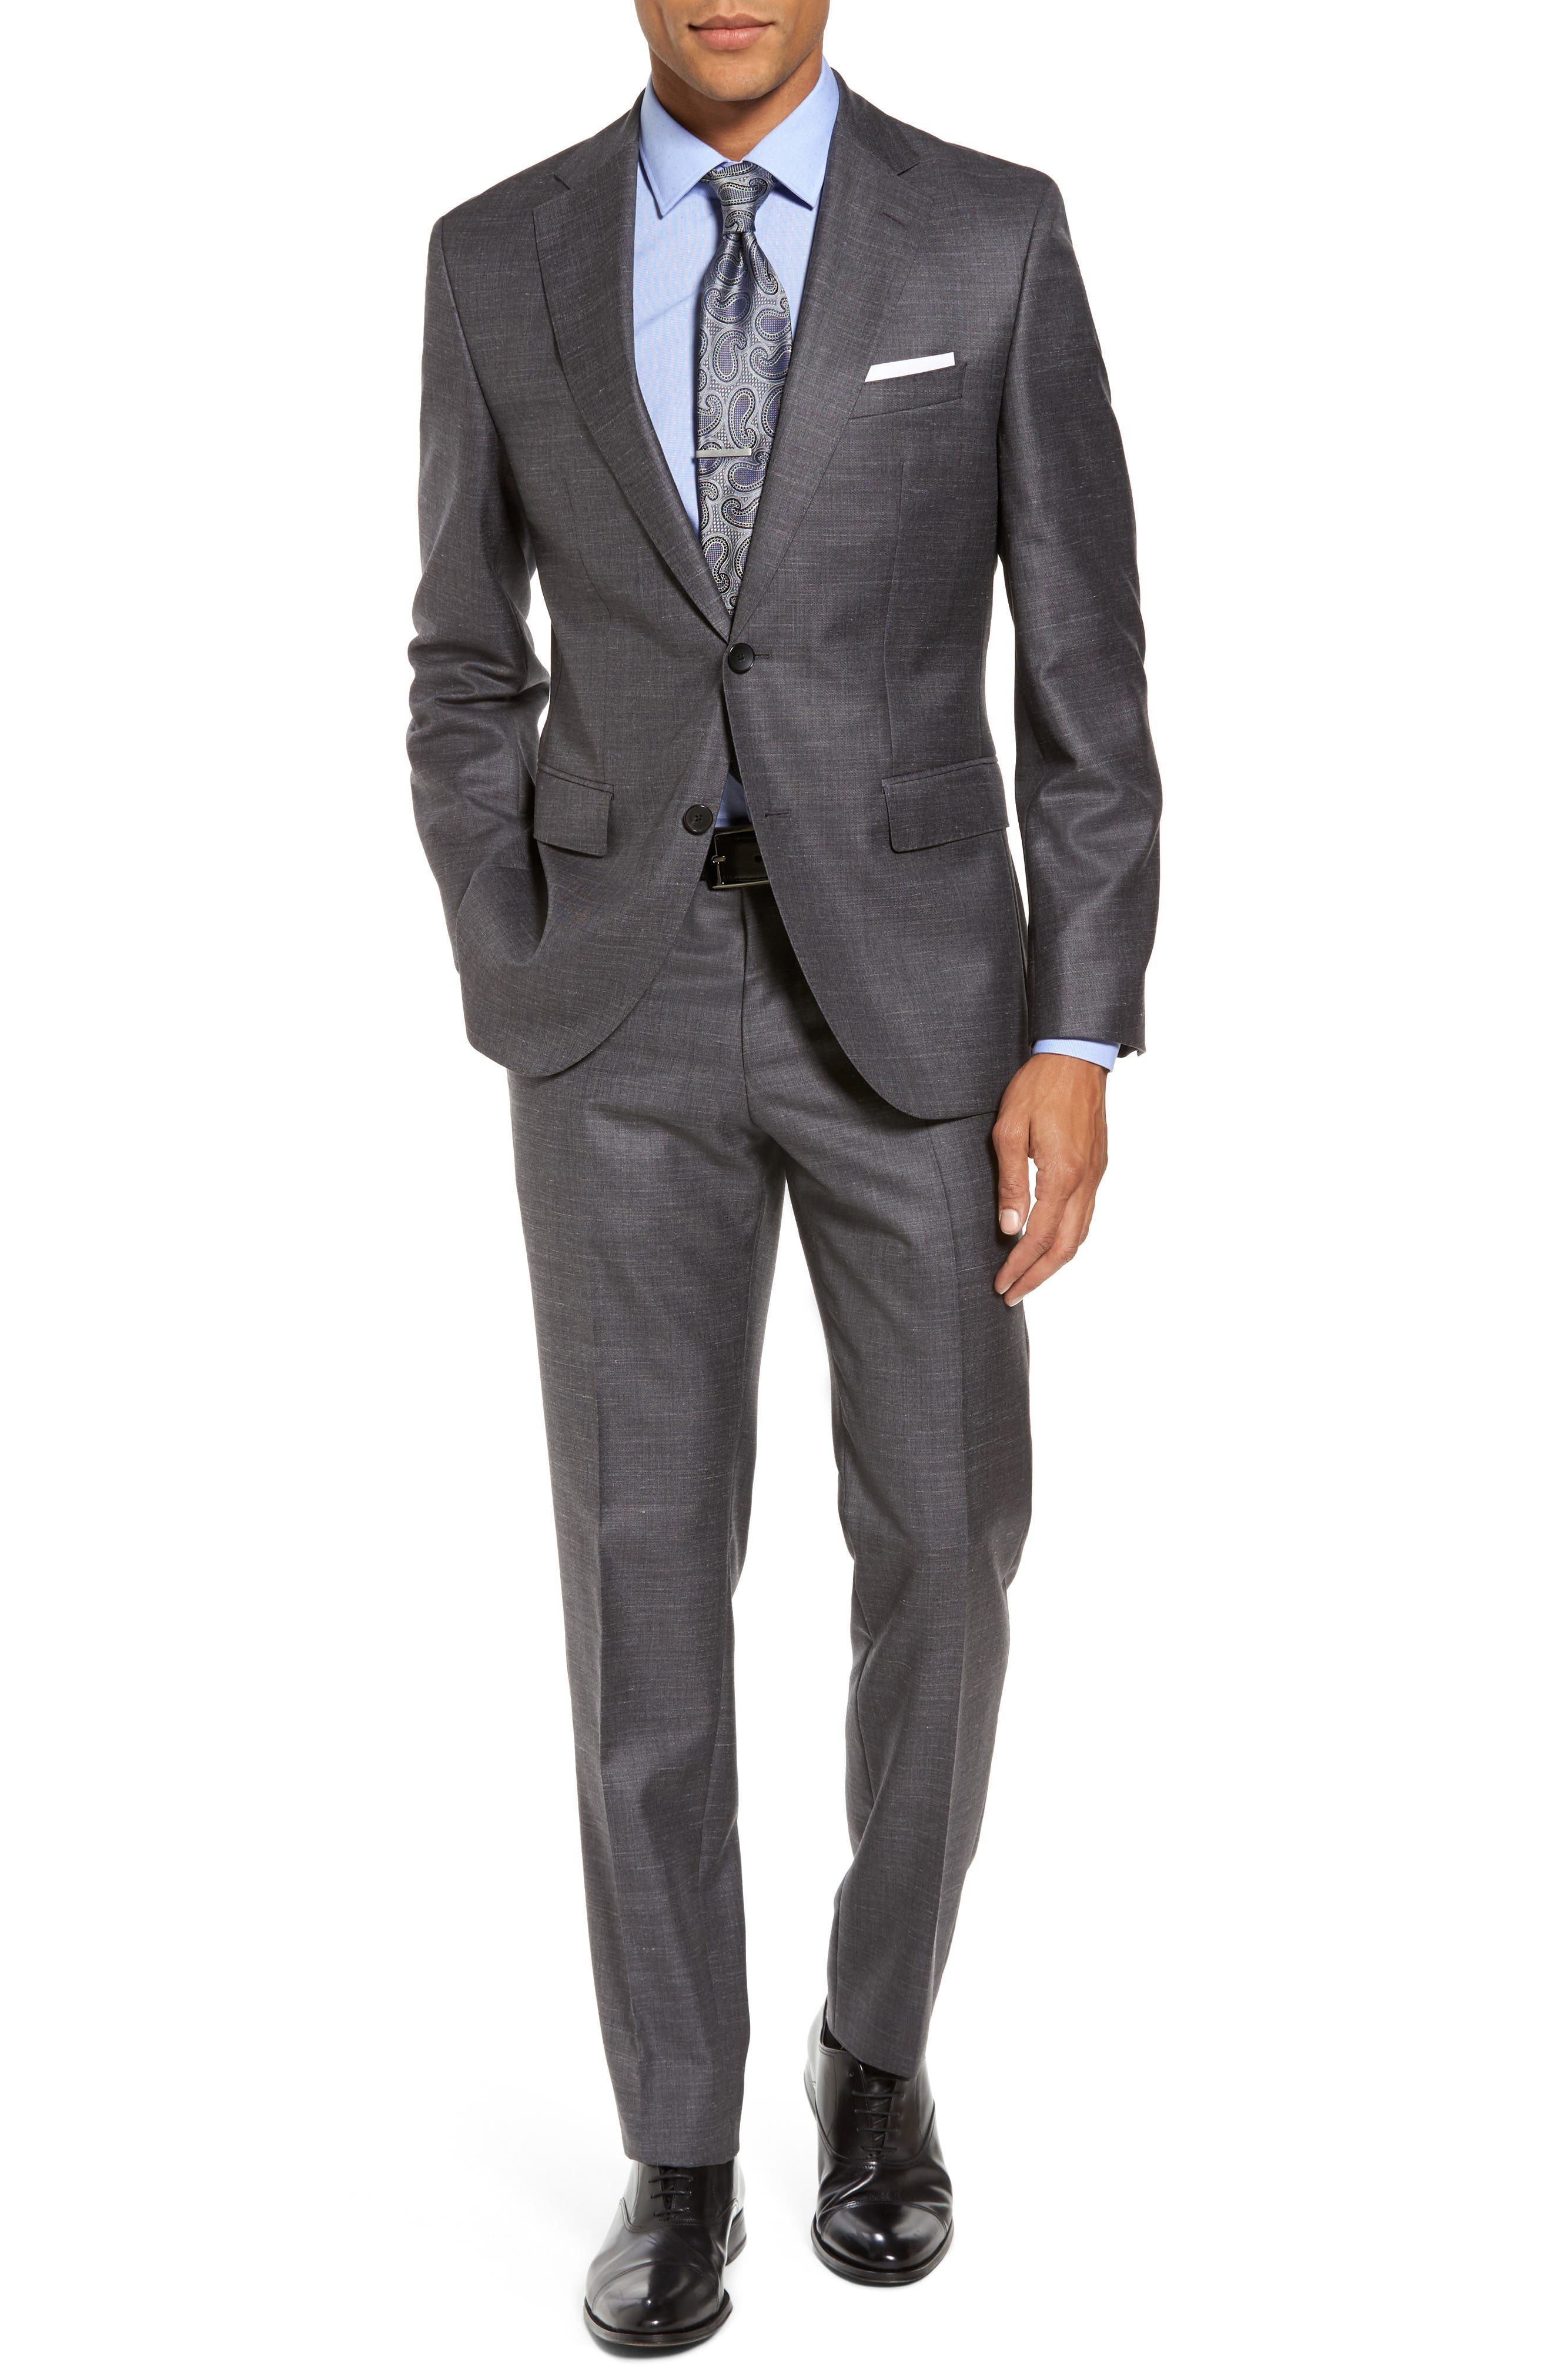 Main Image - BOSS Johnstons/Lenon Classic Fit Solid Wool Blend Suit